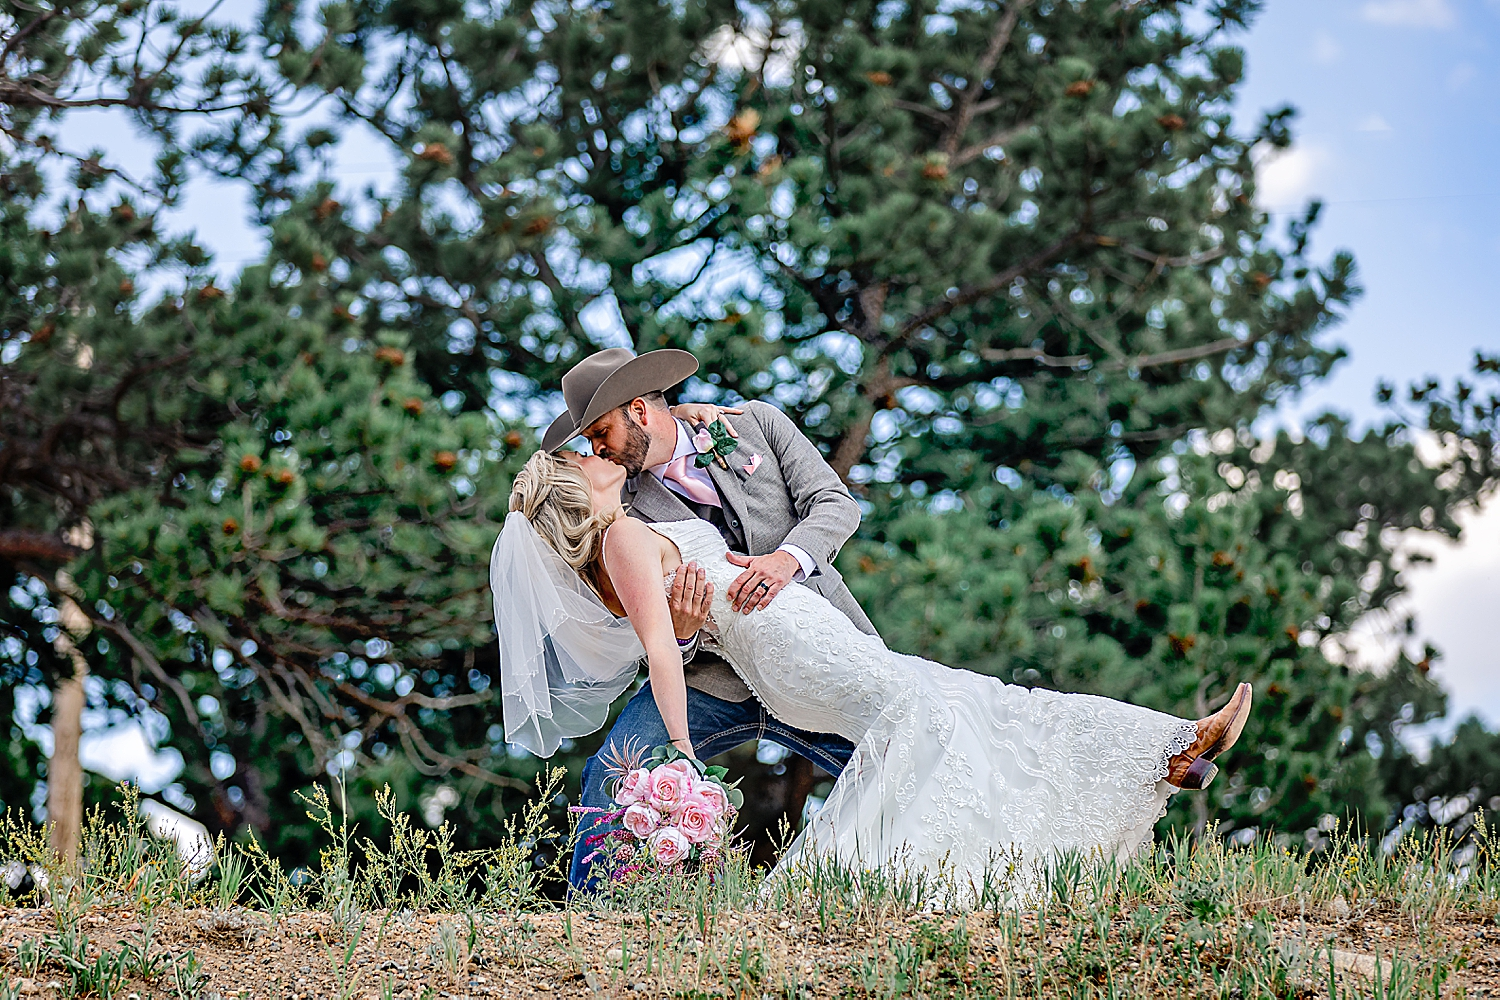 Carly-Barton-Photography-Rocky-Mountain-National-Park-Estes-Park-Wedding-Elopement_0023.jpg